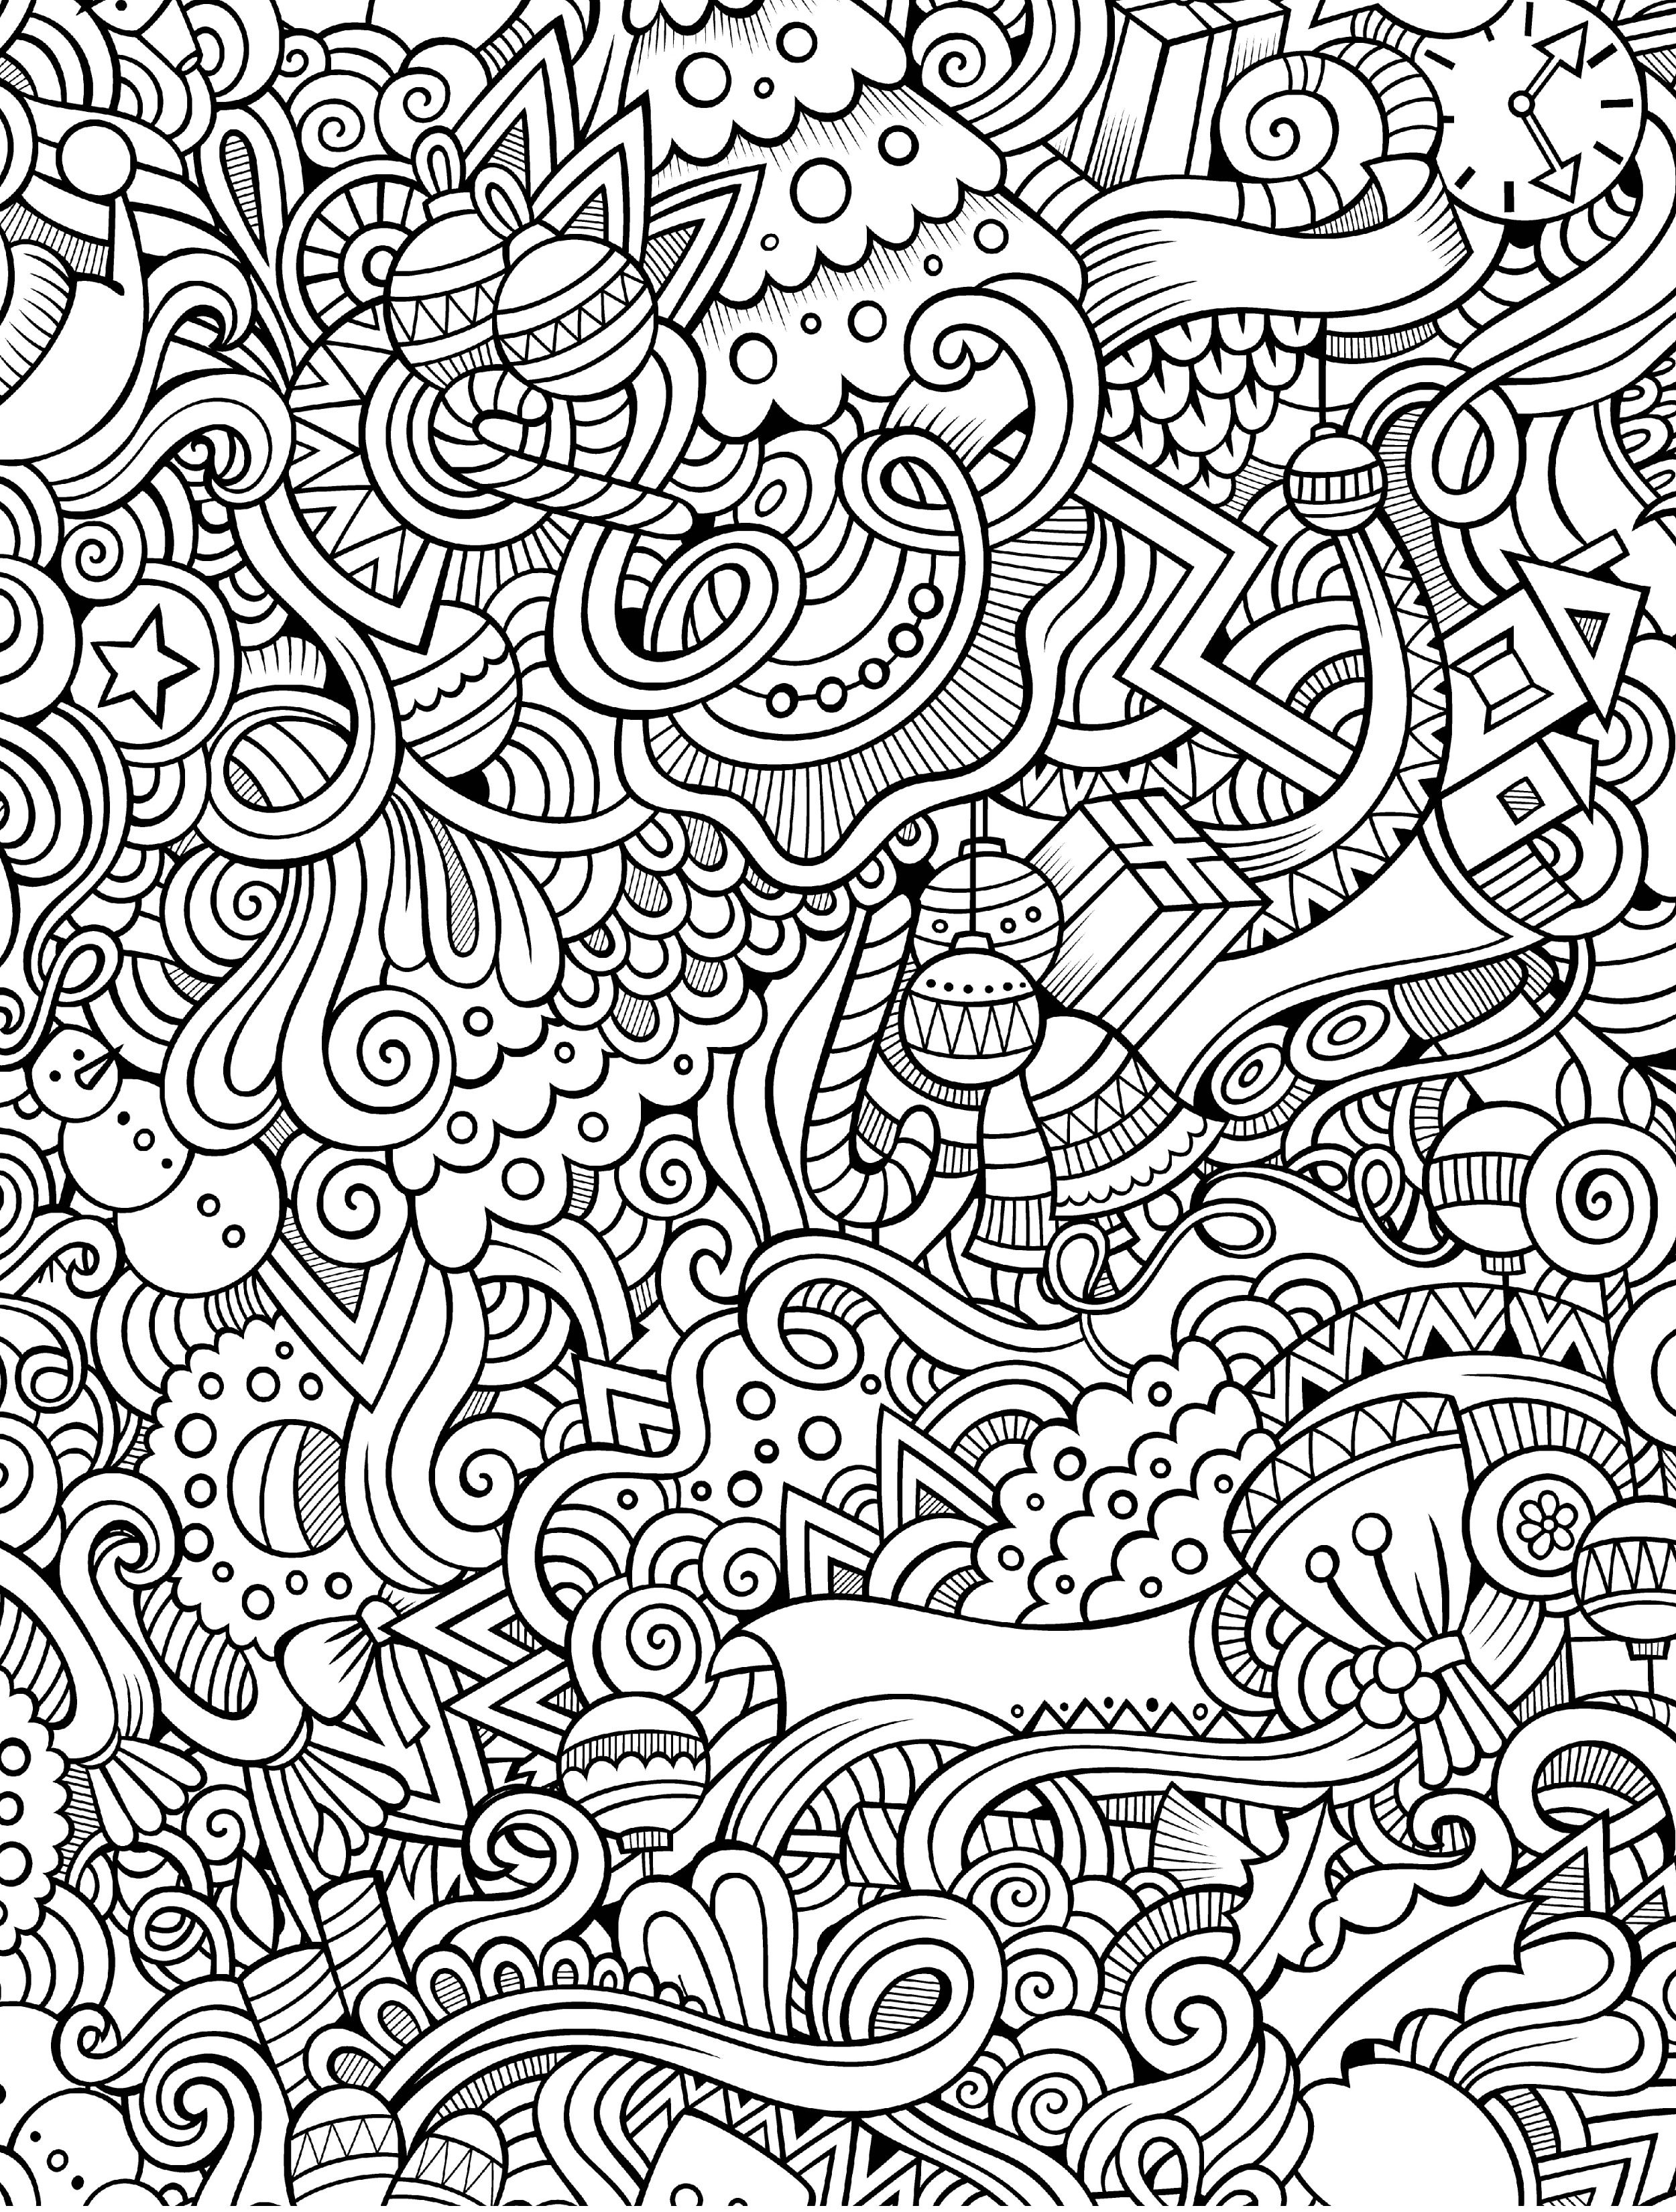 Free printable coloring in pages - 10 Free Printable Holiday Adult Coloring Pages